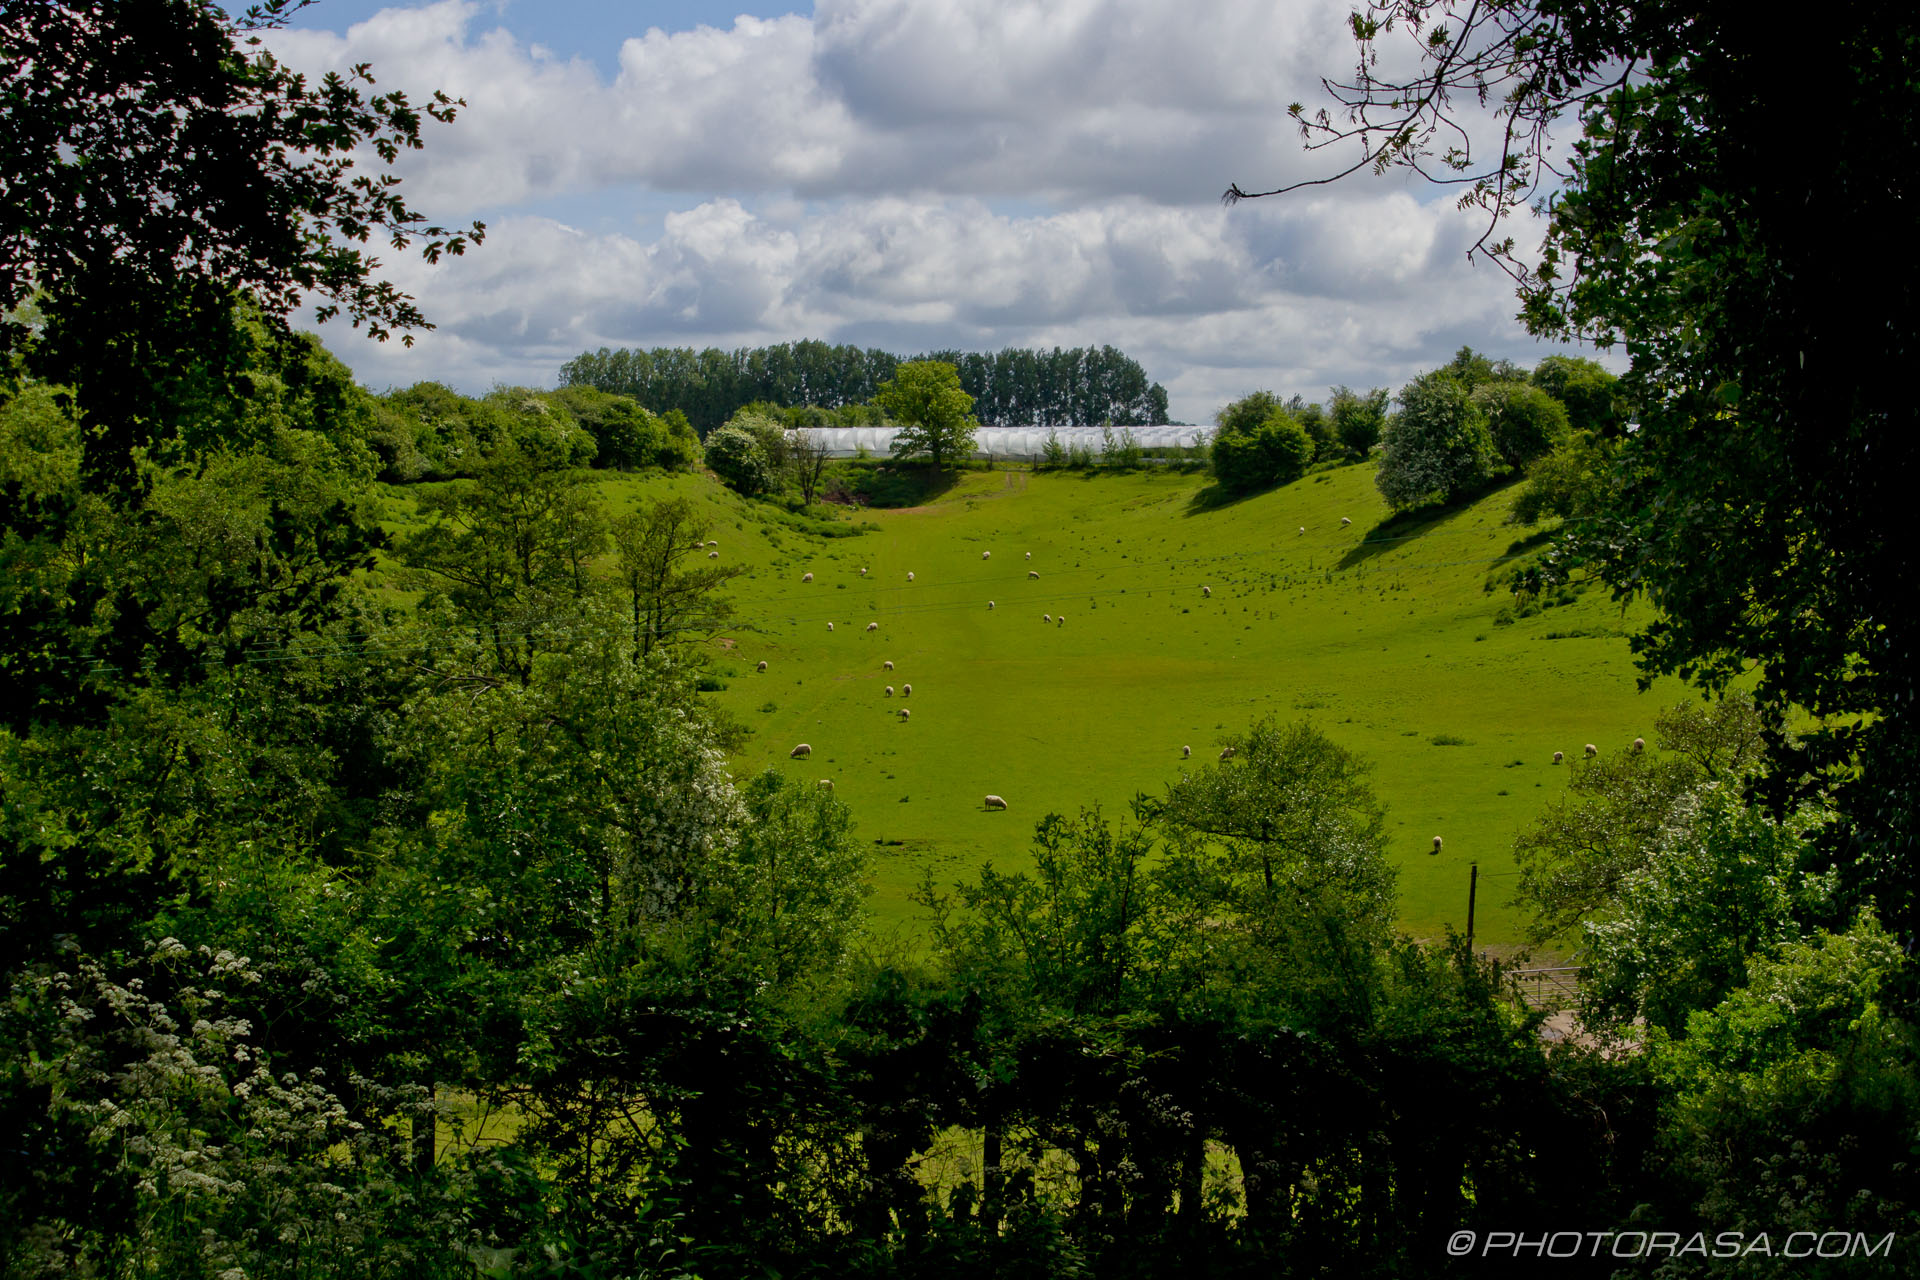 http://photorasa.com/countryside-otham/sheep-field-near-stoneacre-place/